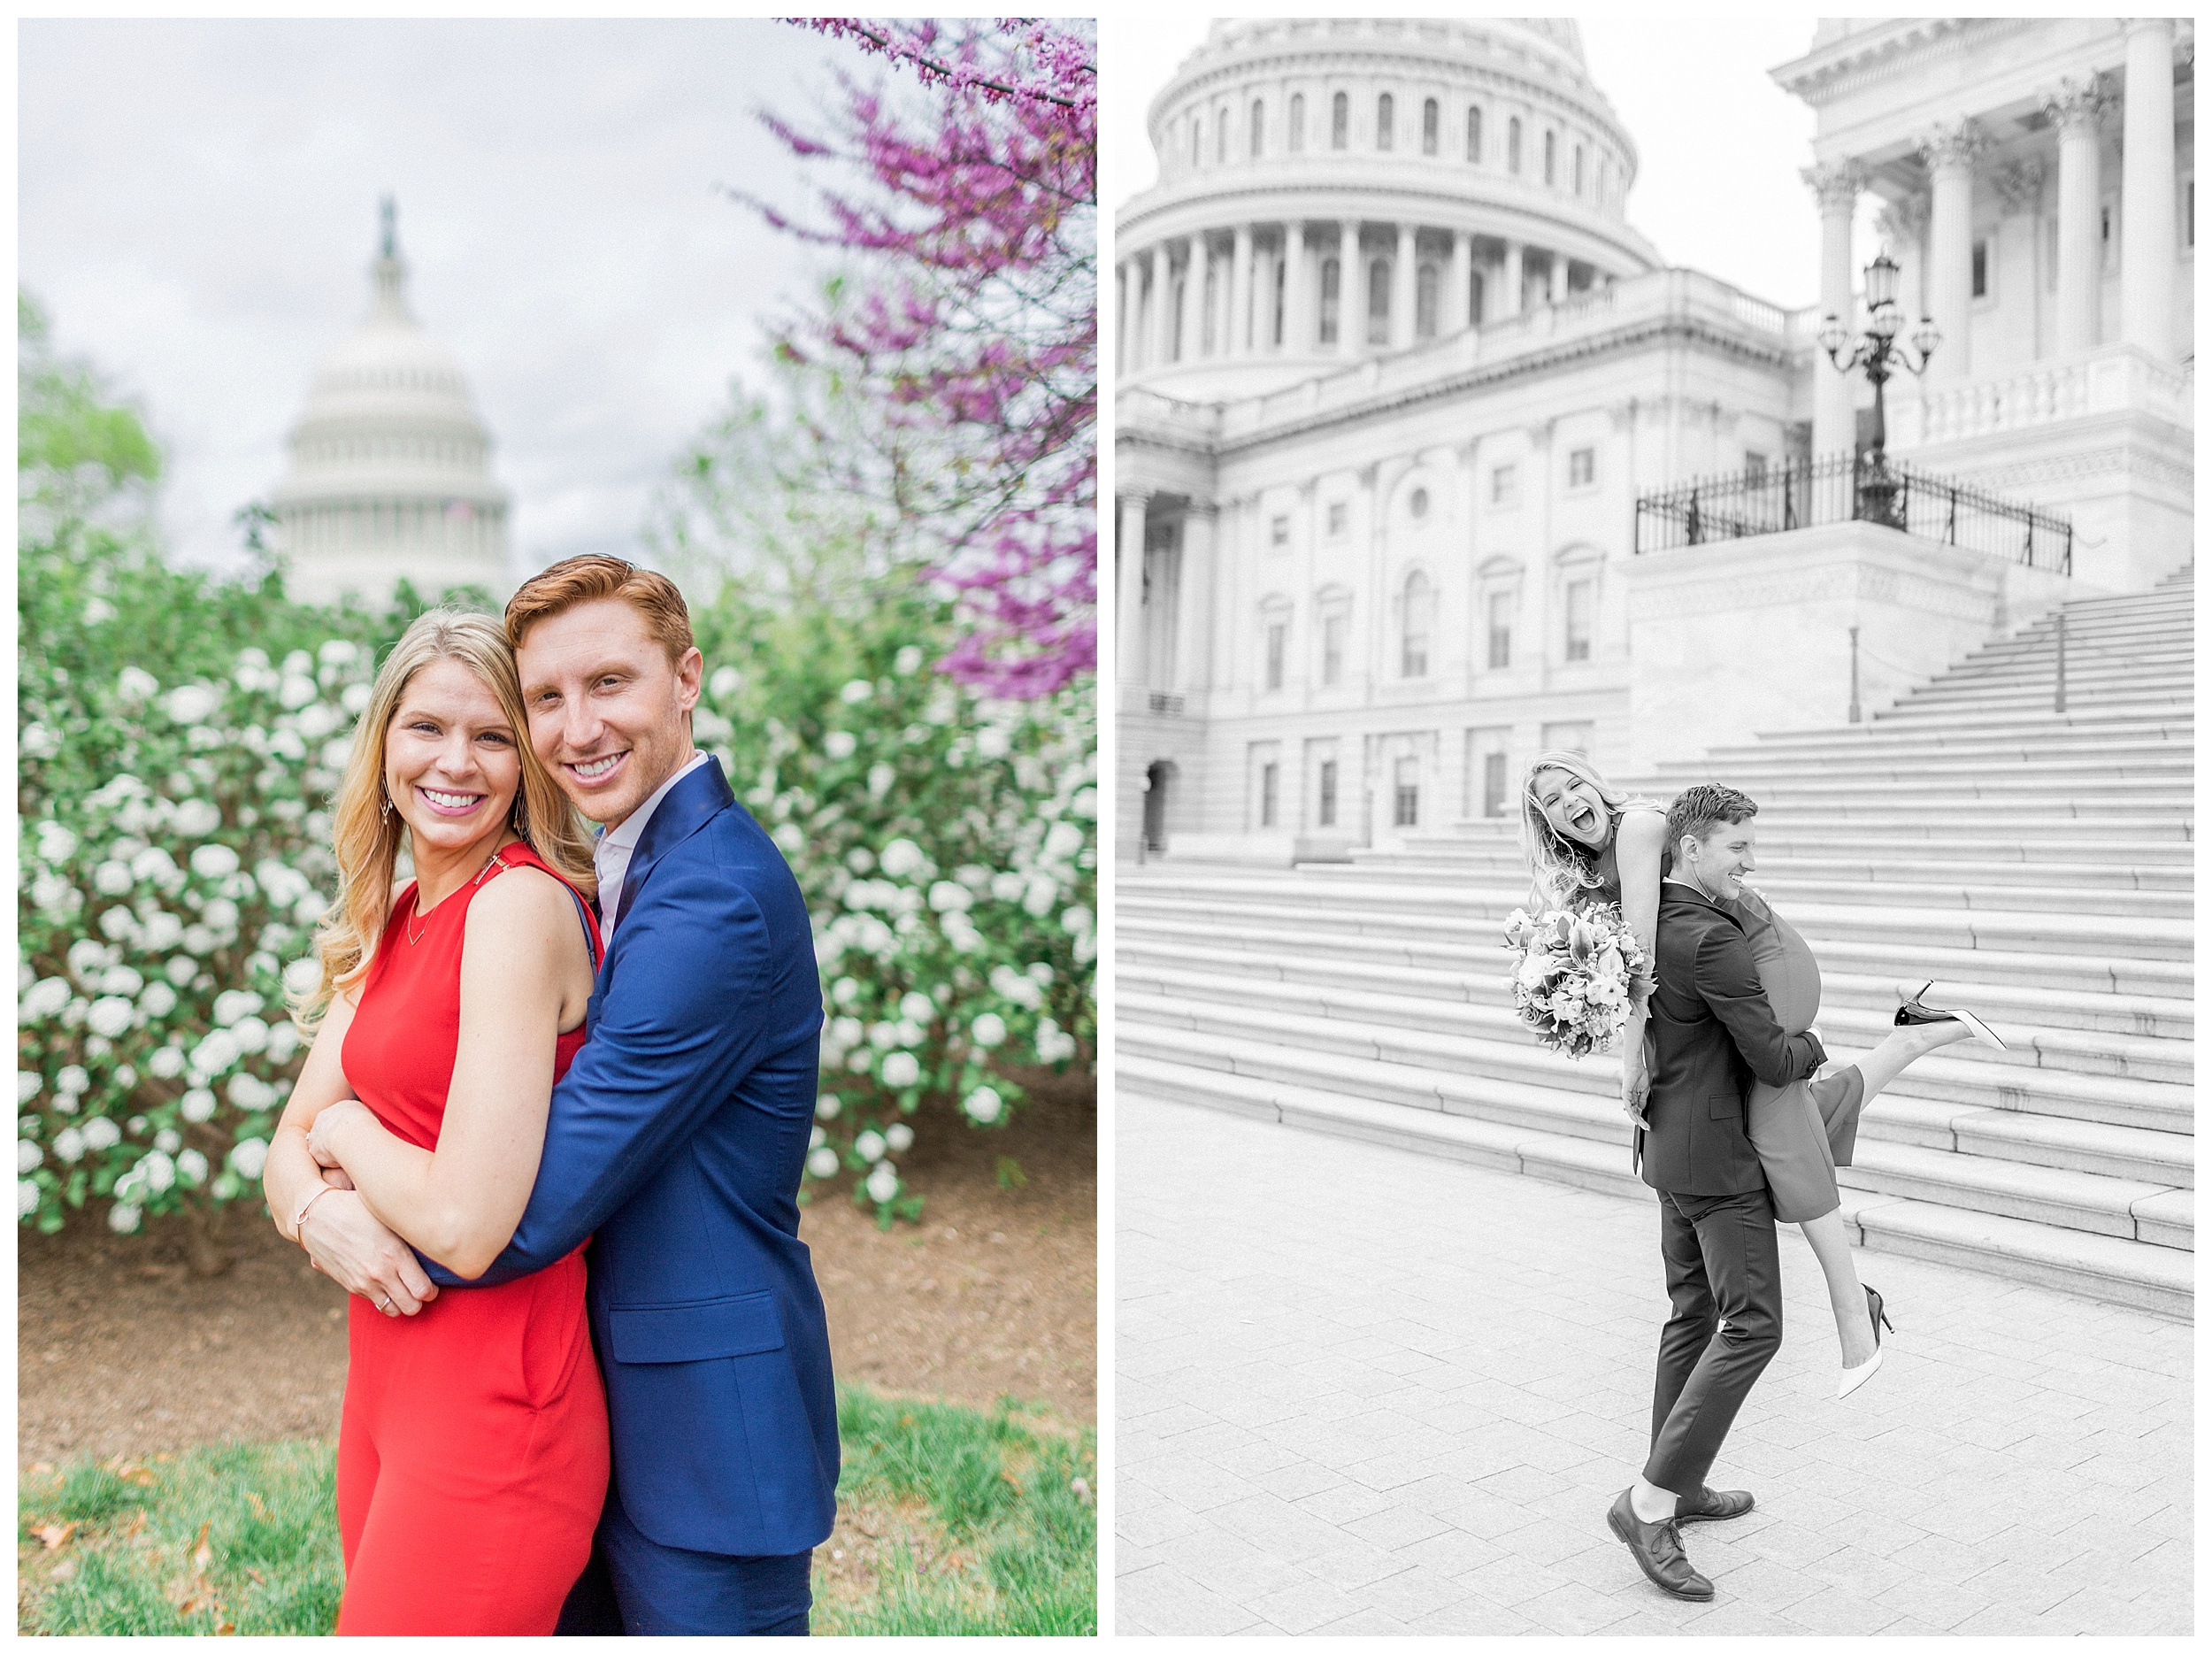 District of Columbia Elopement | Library of Congress Engagement Session Washington DC_0030.jpg